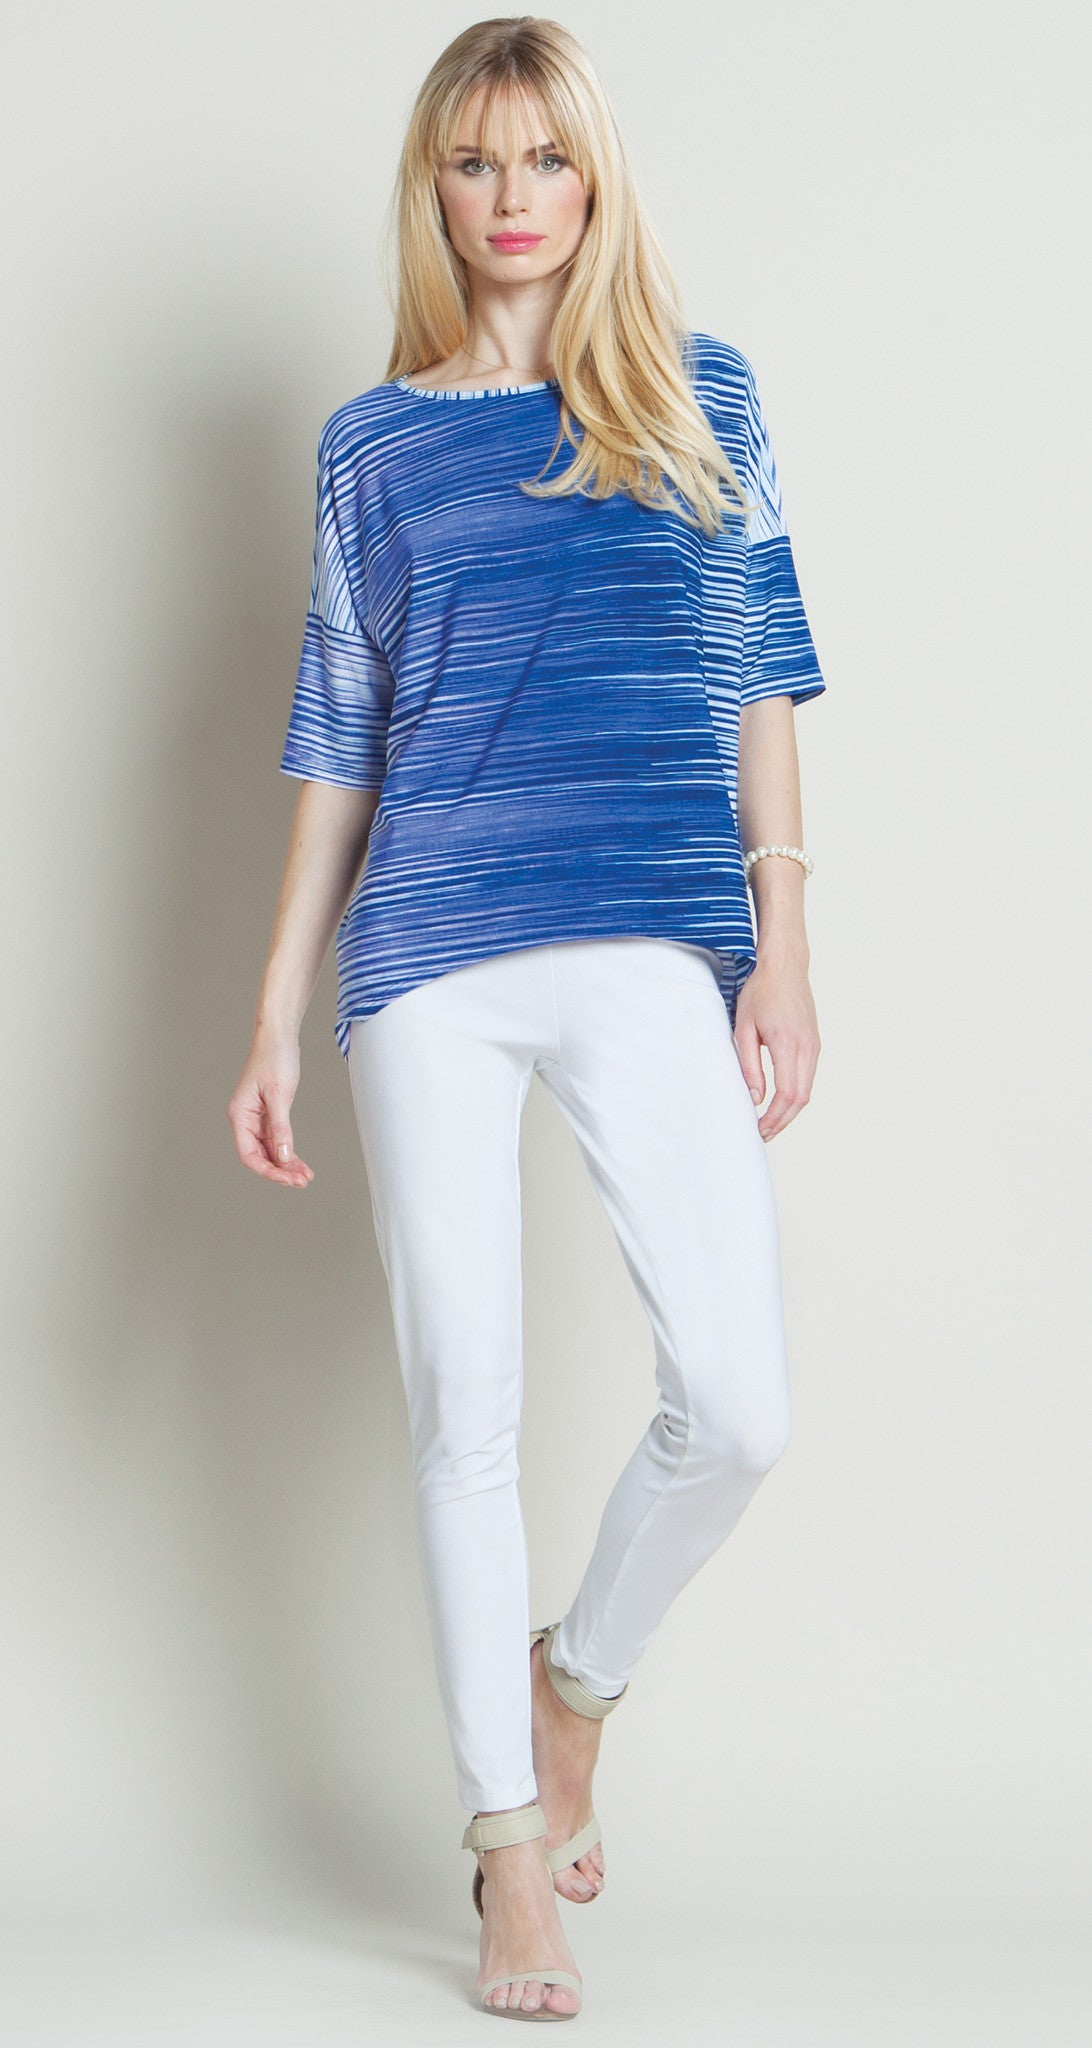 Contrast Stripe Top - Final Sale!